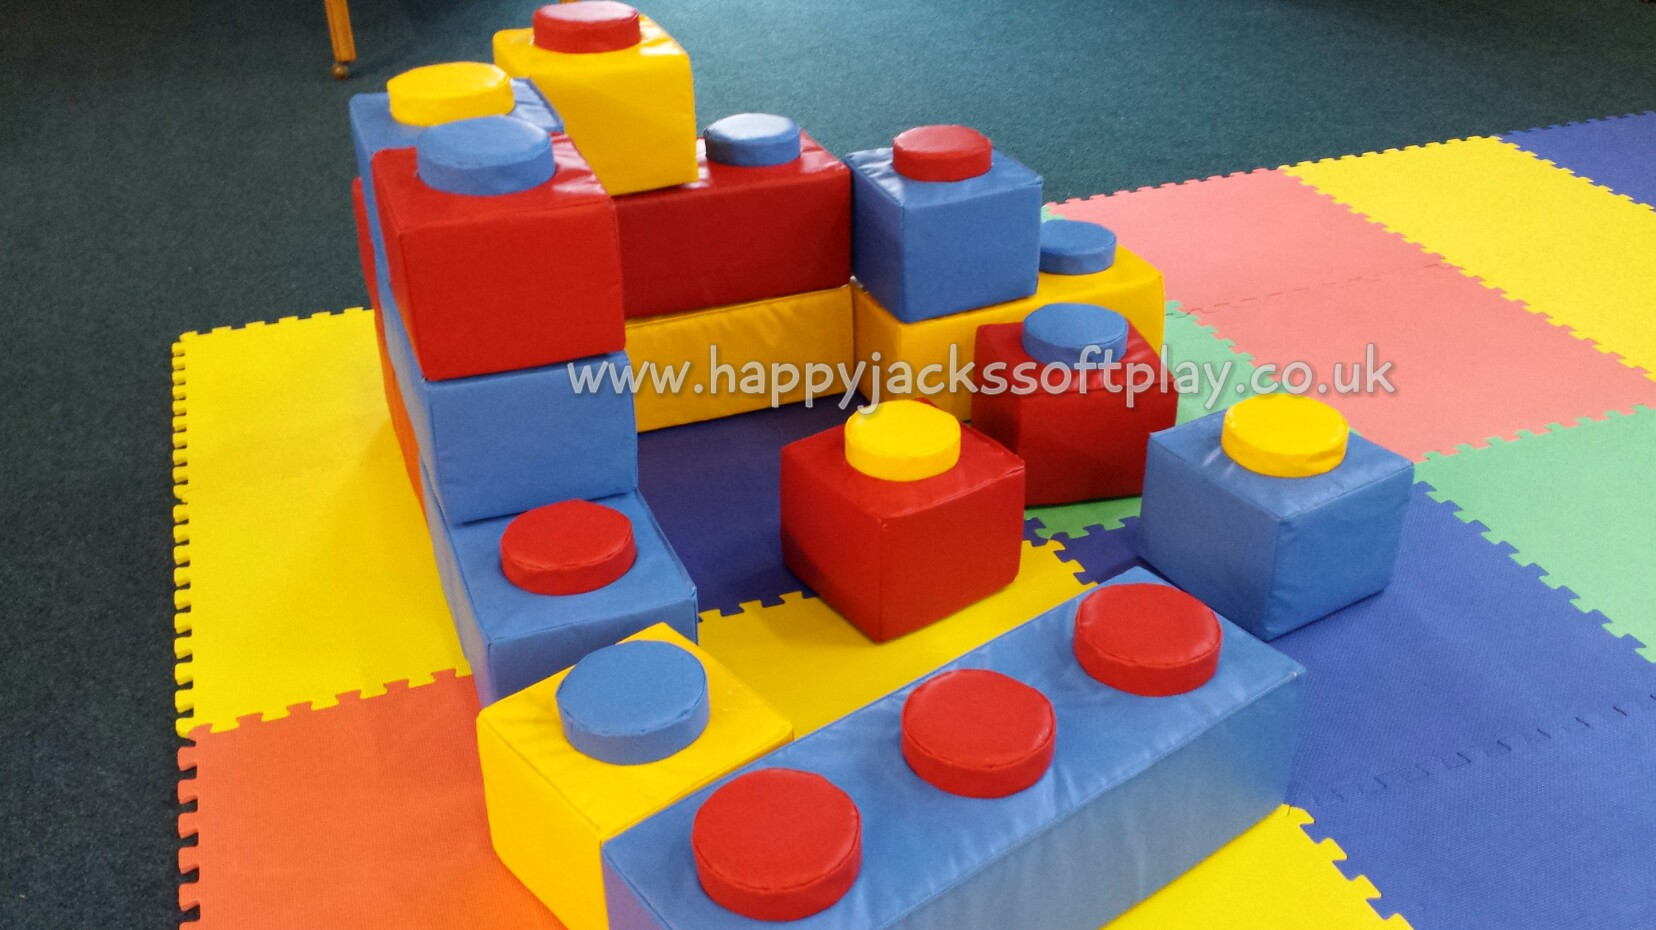 Lego Soft Play Shapes- £40